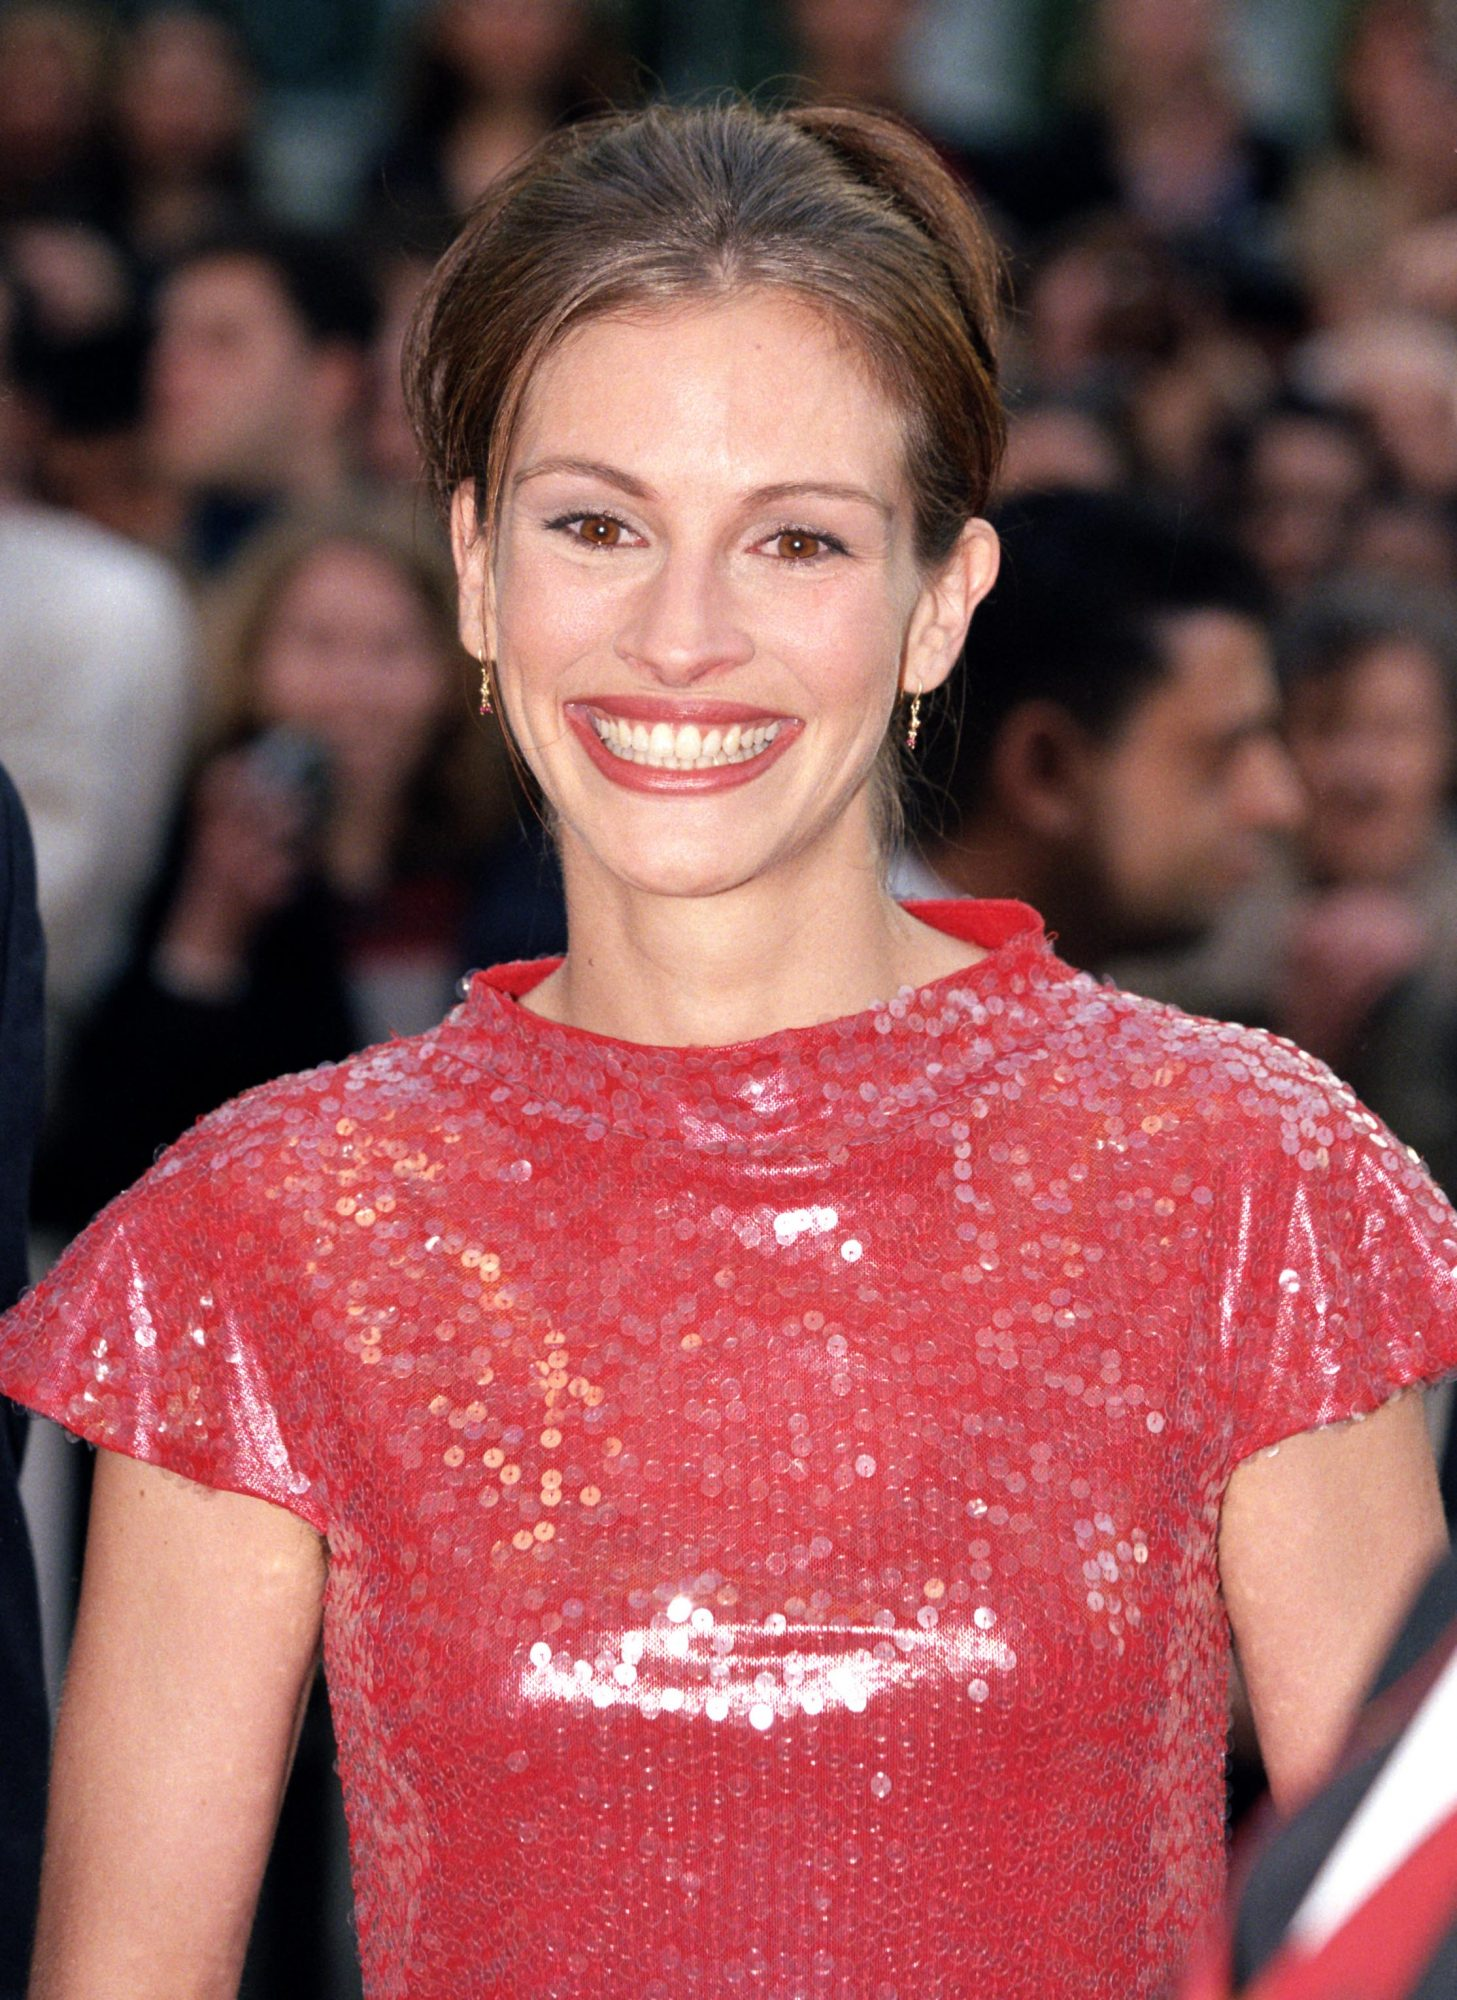 Julia Roberts's Red Carpet Armpit Hair Moment Wasn't the Feminist Statement You Thought It Was